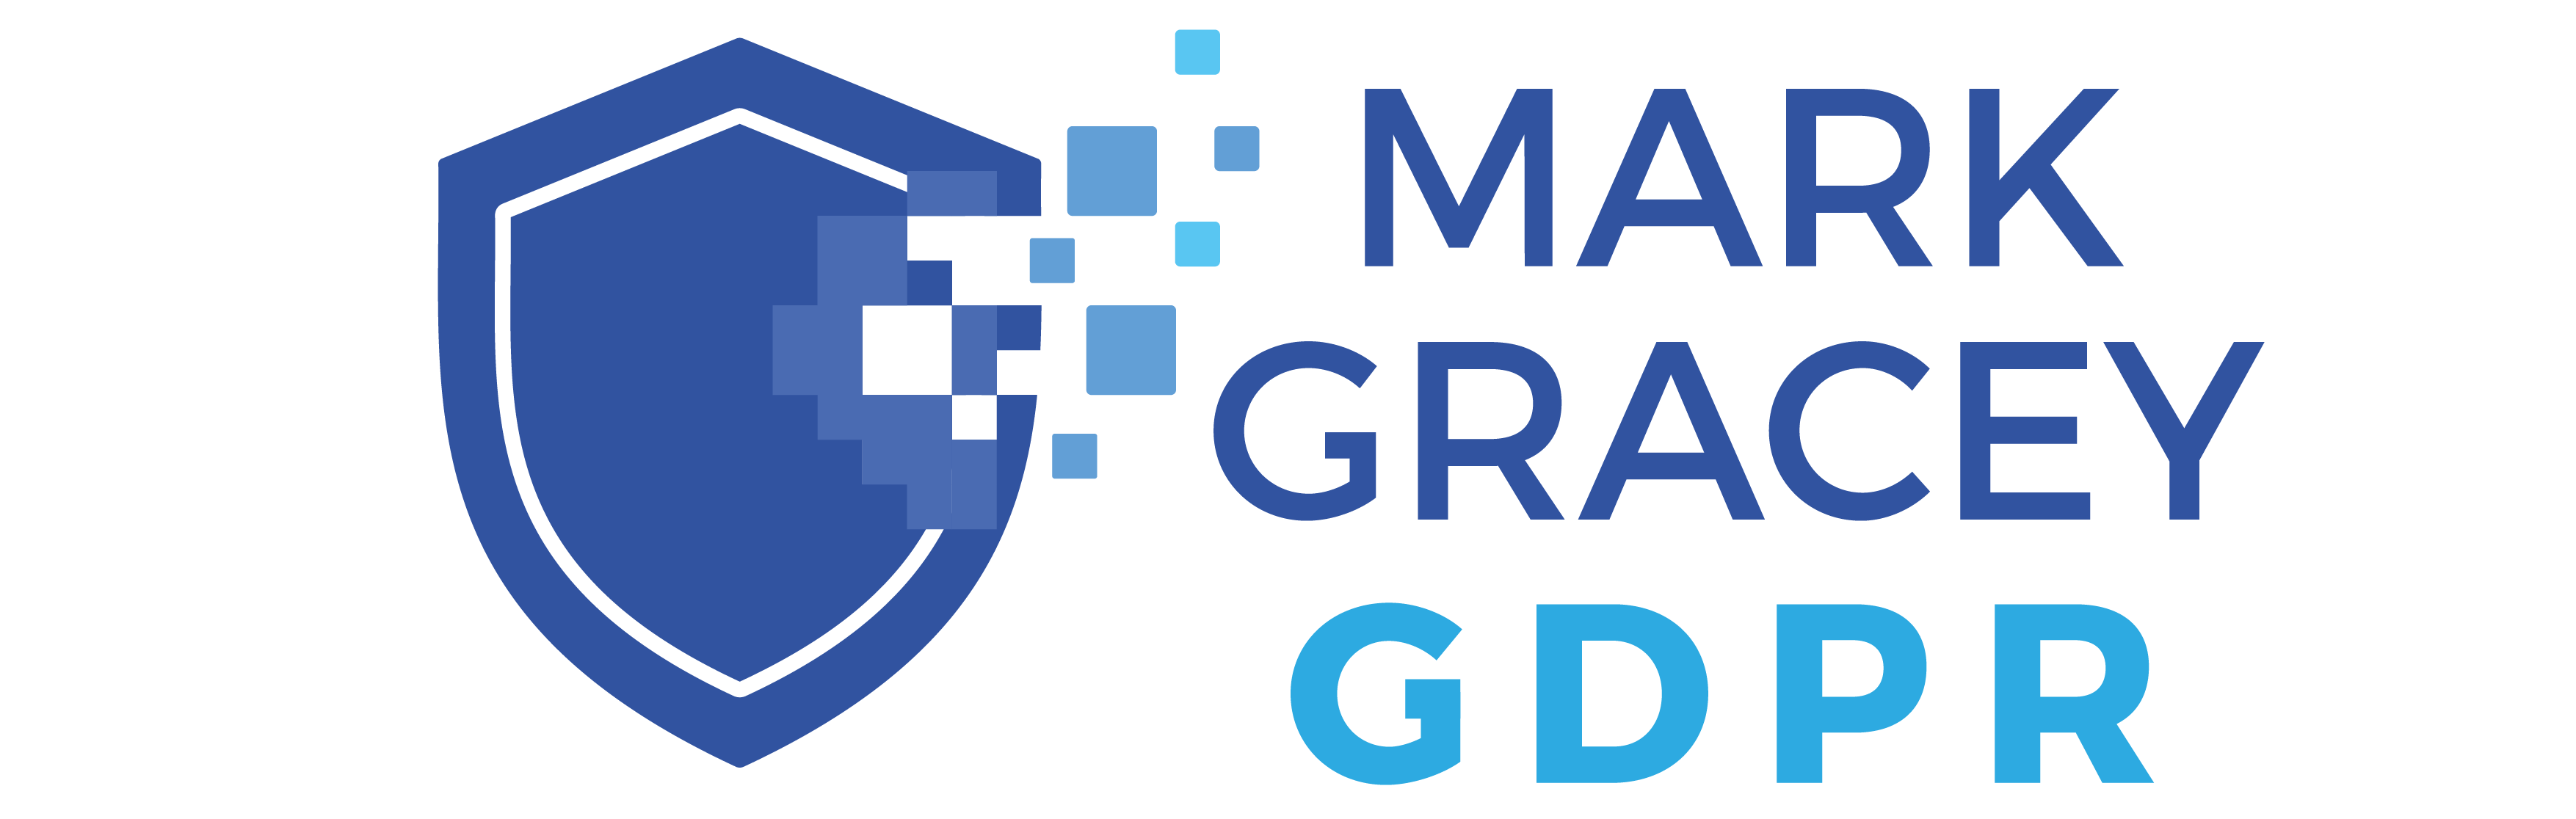 Mark Gracey GDPR